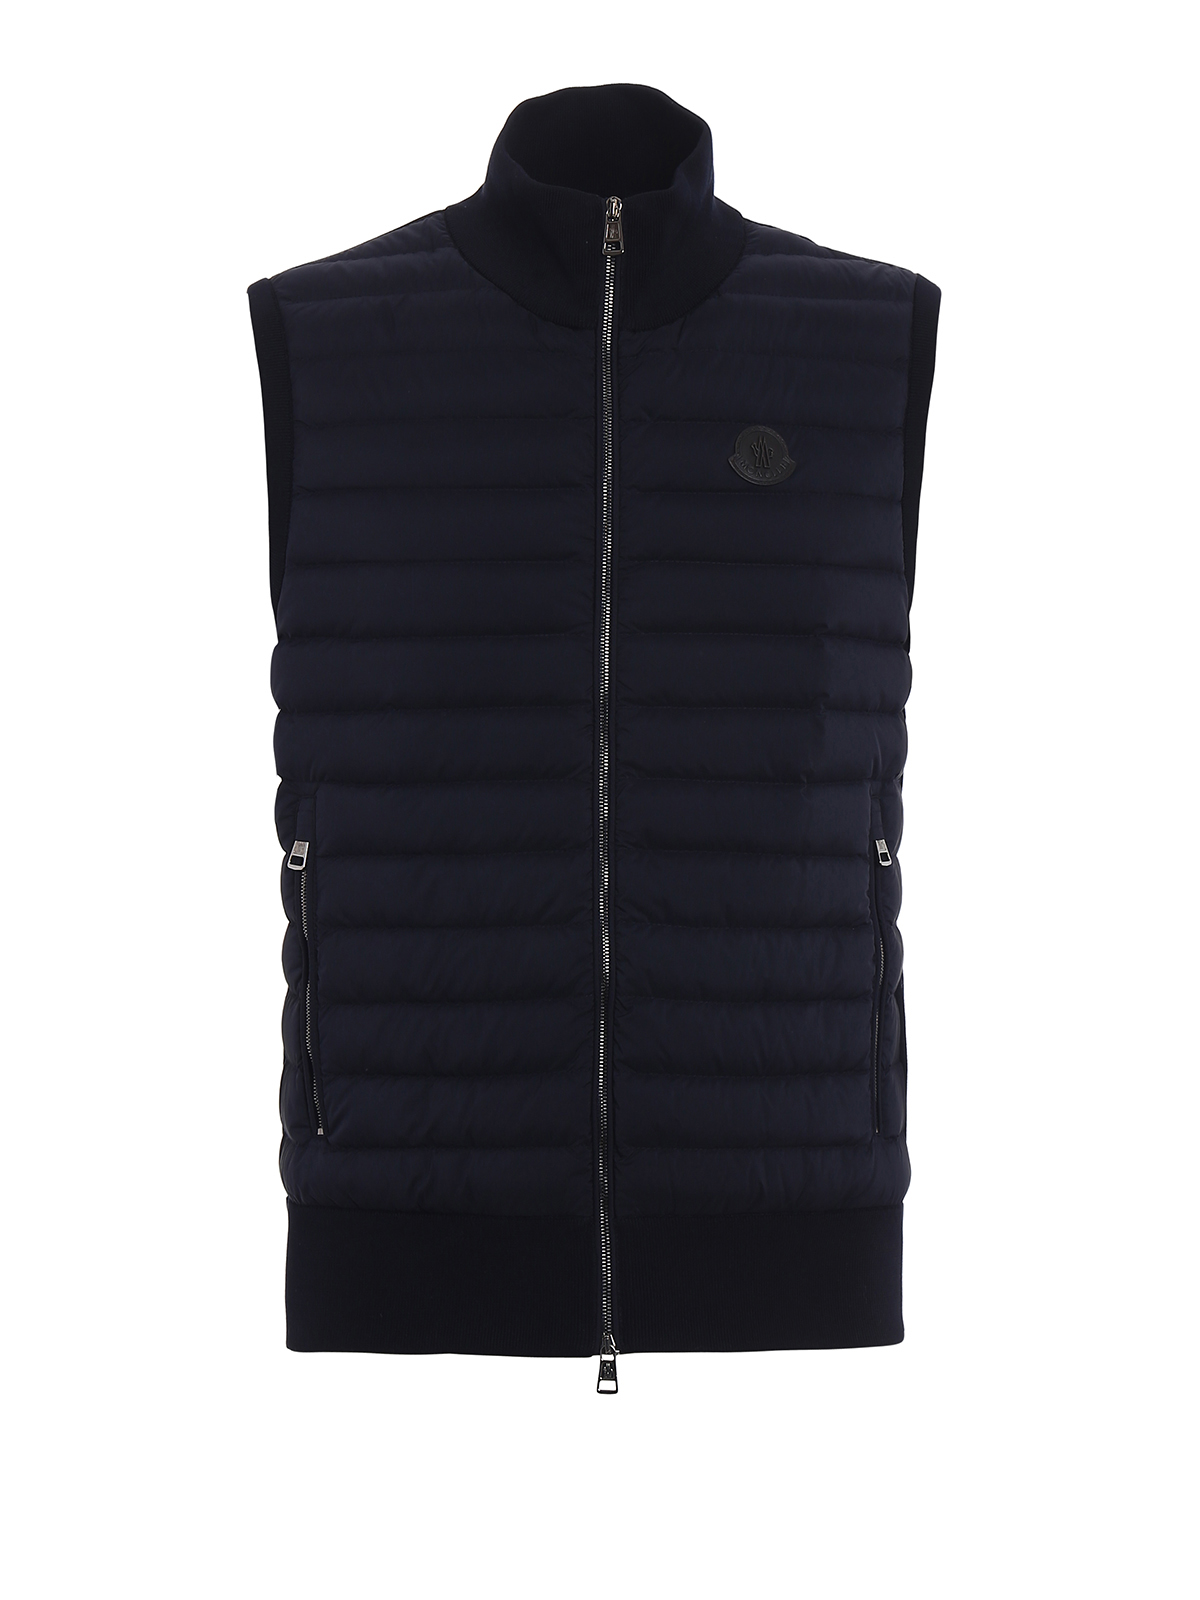 68fce1dc7 where to buy moncler vest sale volume 3302a 54b74